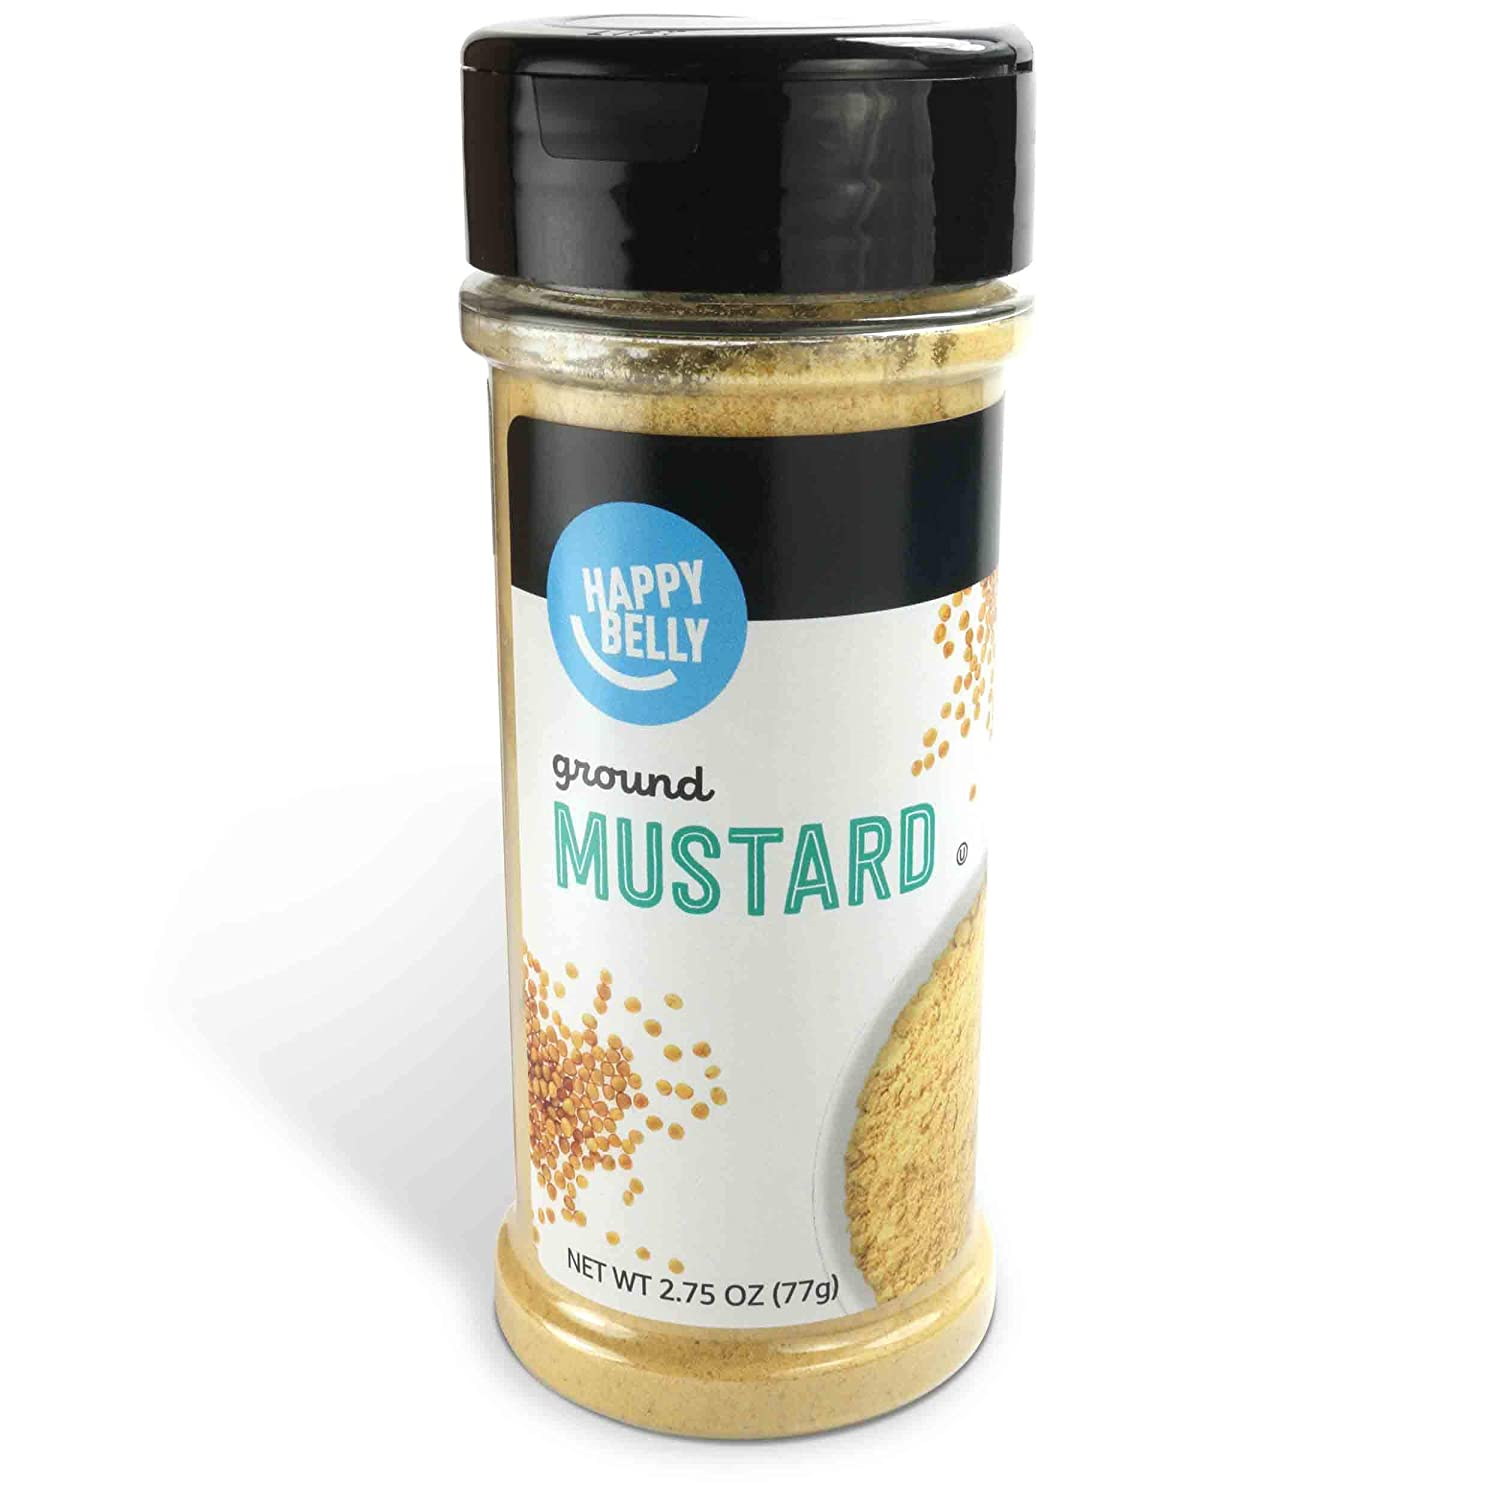 Amazon Brand - Happy Belly Ground Mustard, 2.75 Ounces